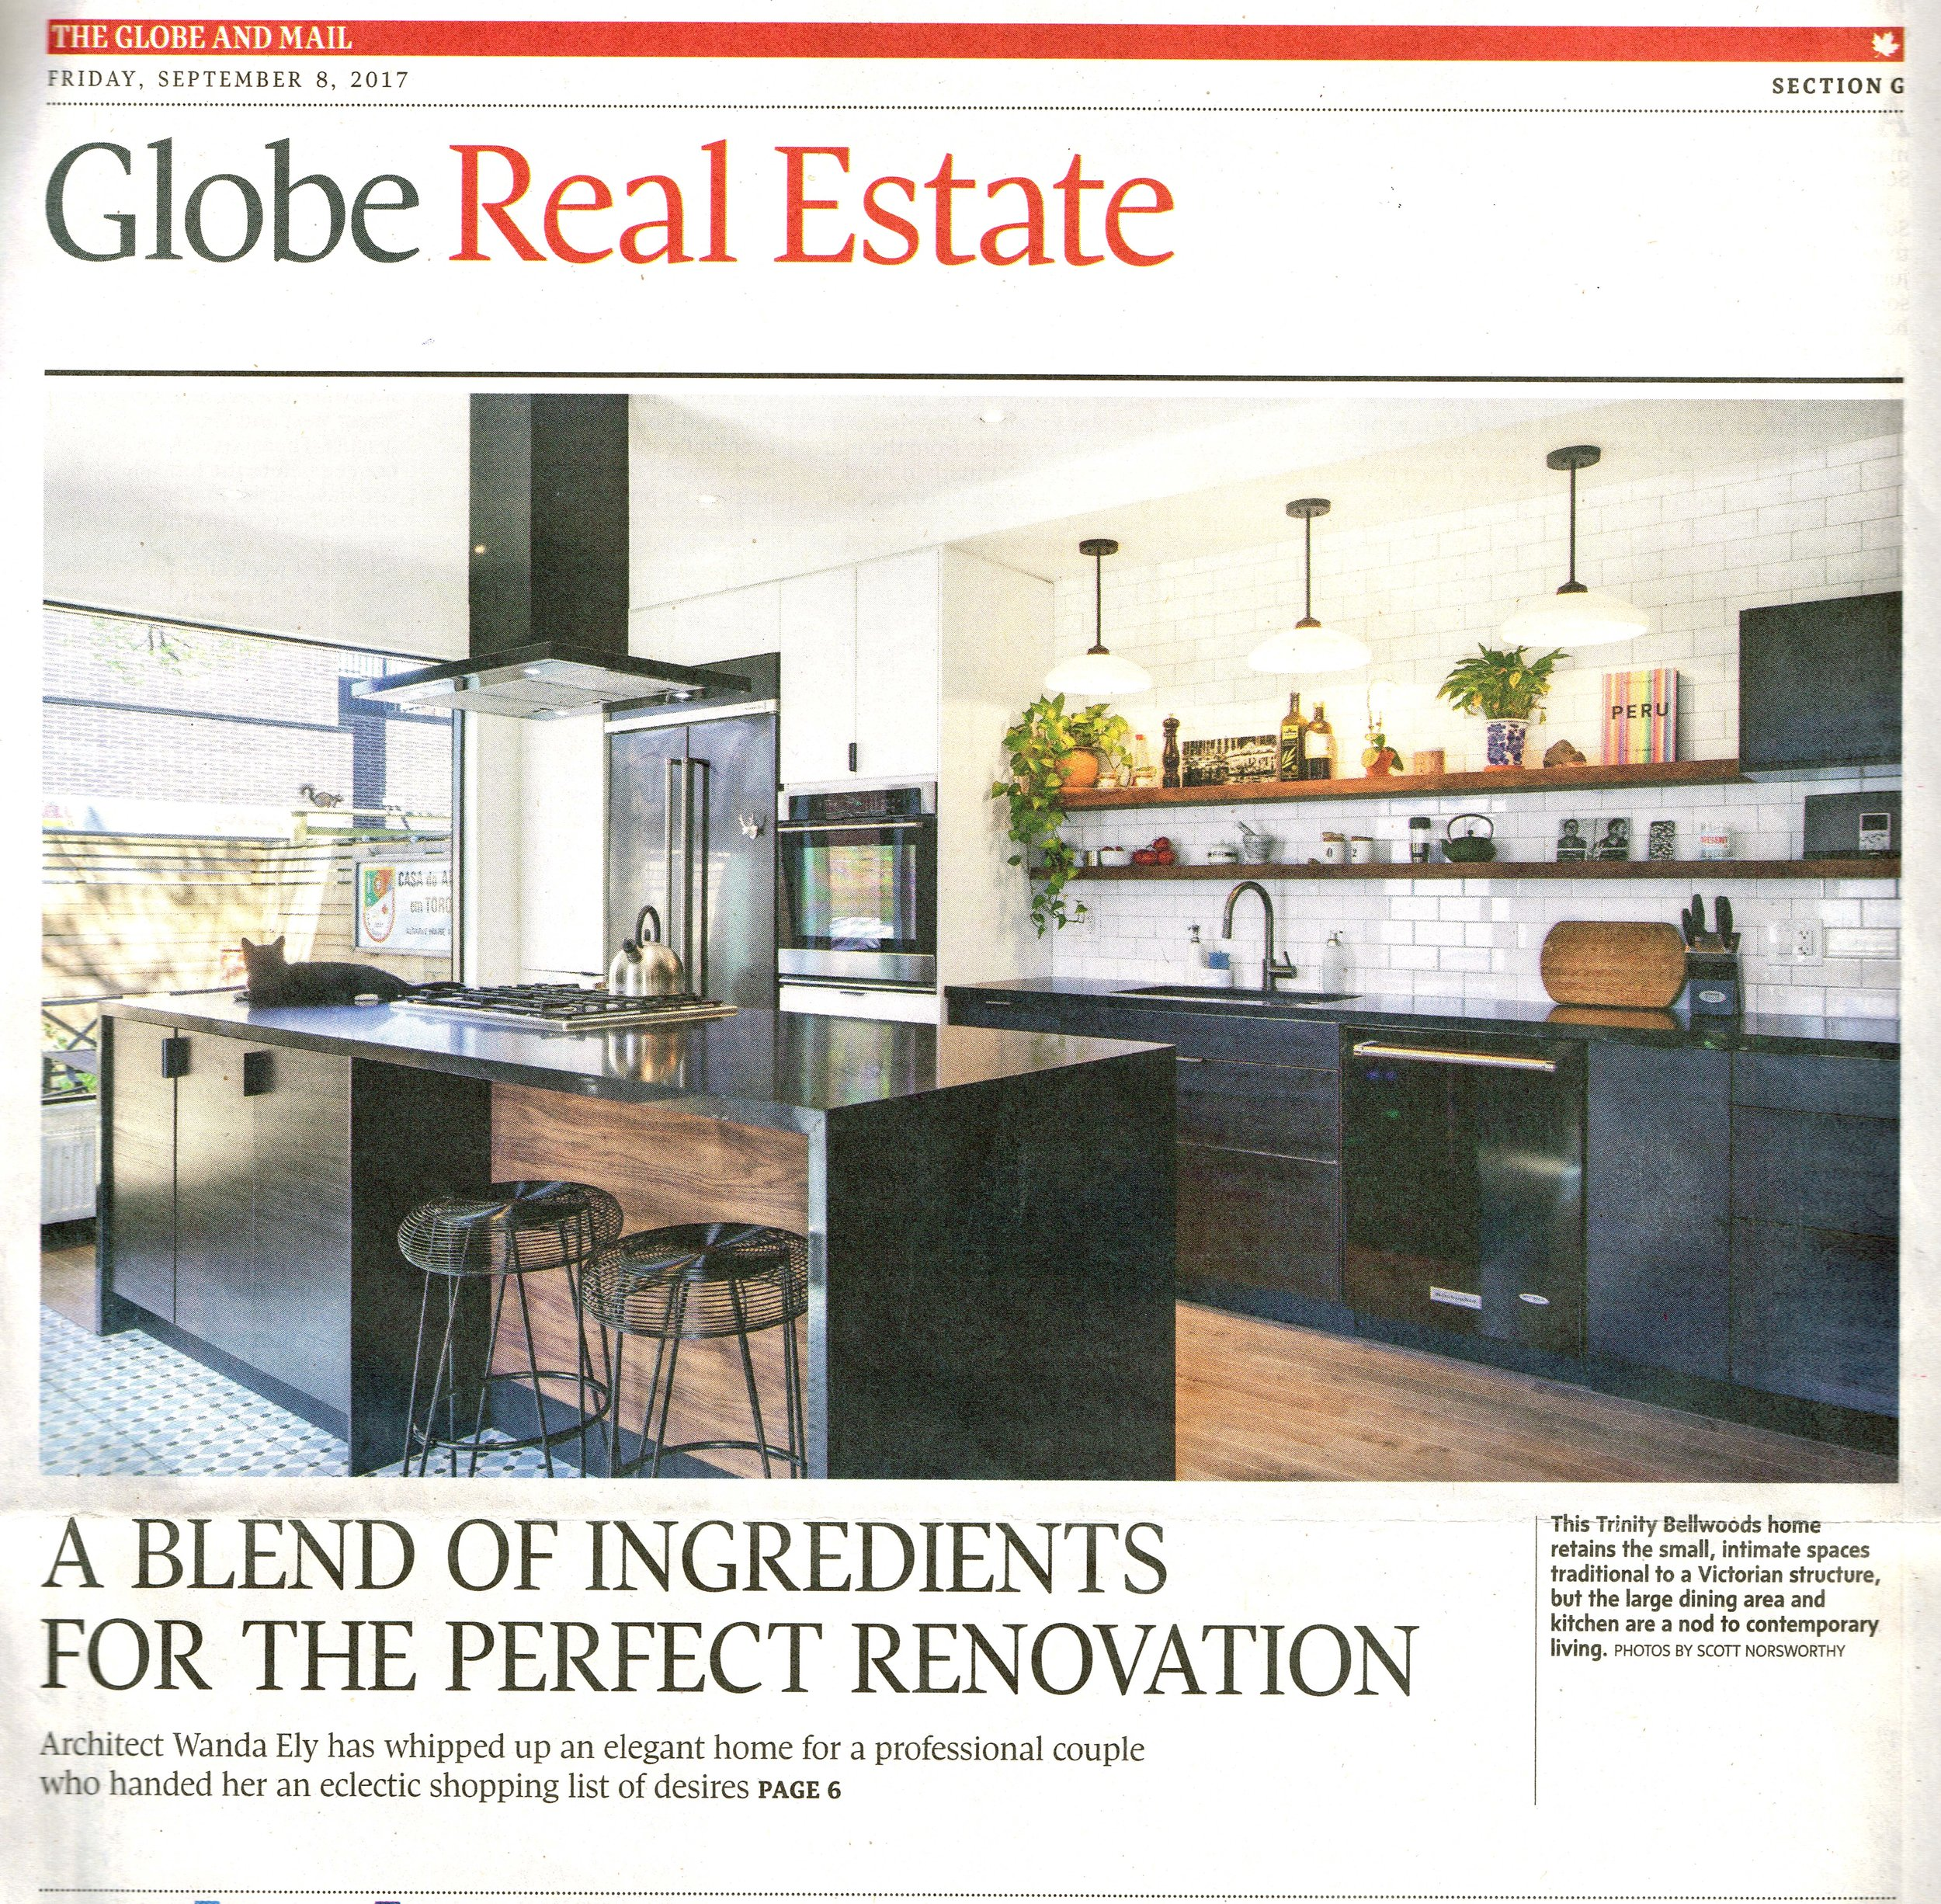 Globe_Givins Article_Front Page20171116.jpg